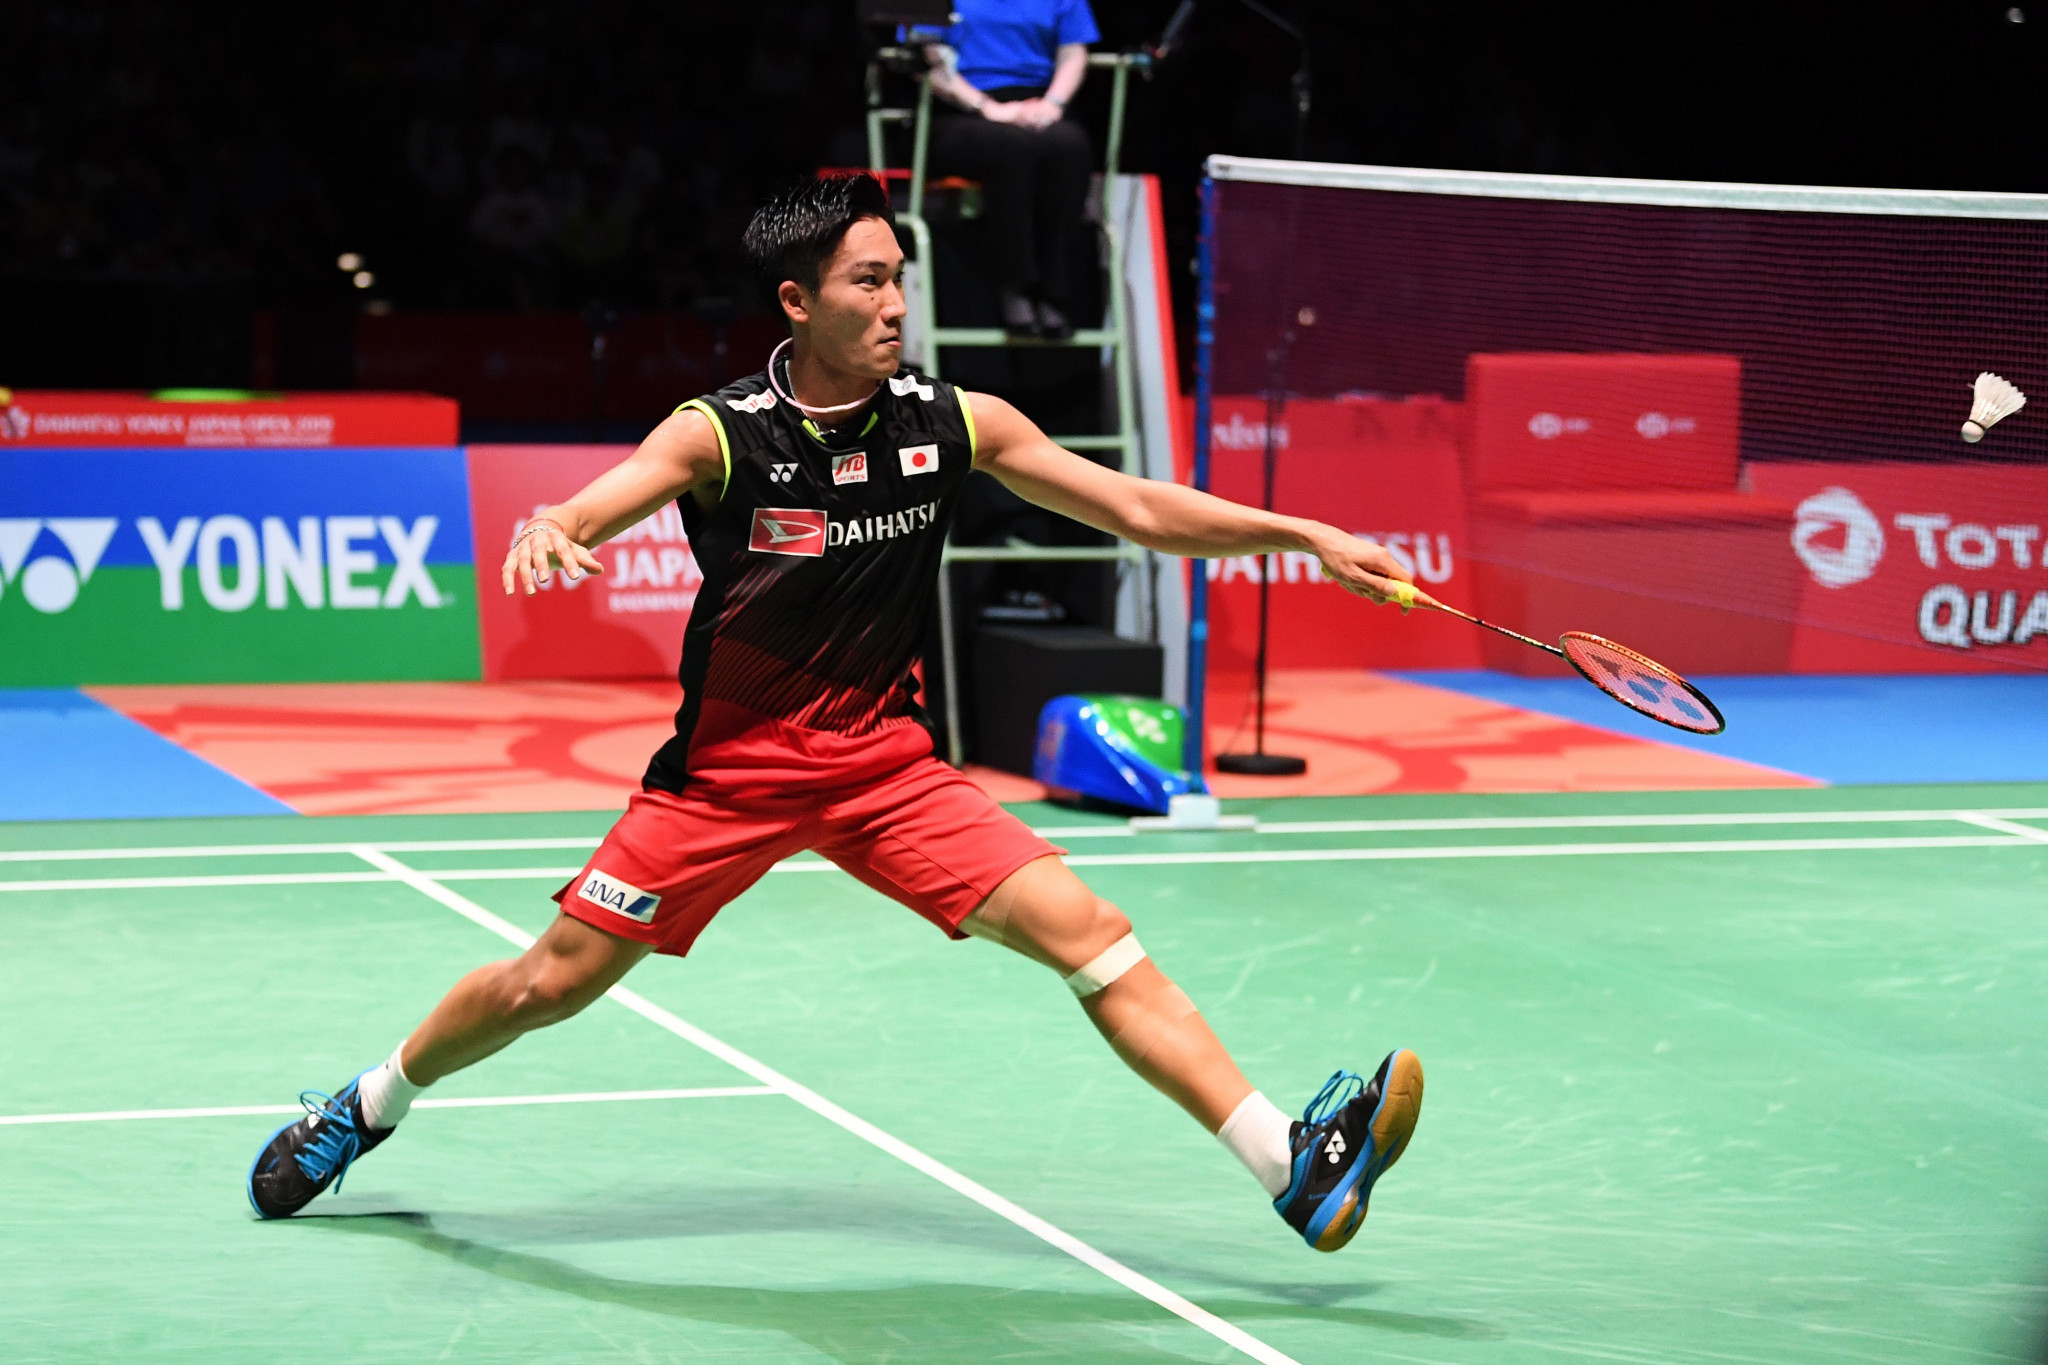 BWF said its revised Tokyo 2020 qualification process has been approved by the IOC ©Getty Images